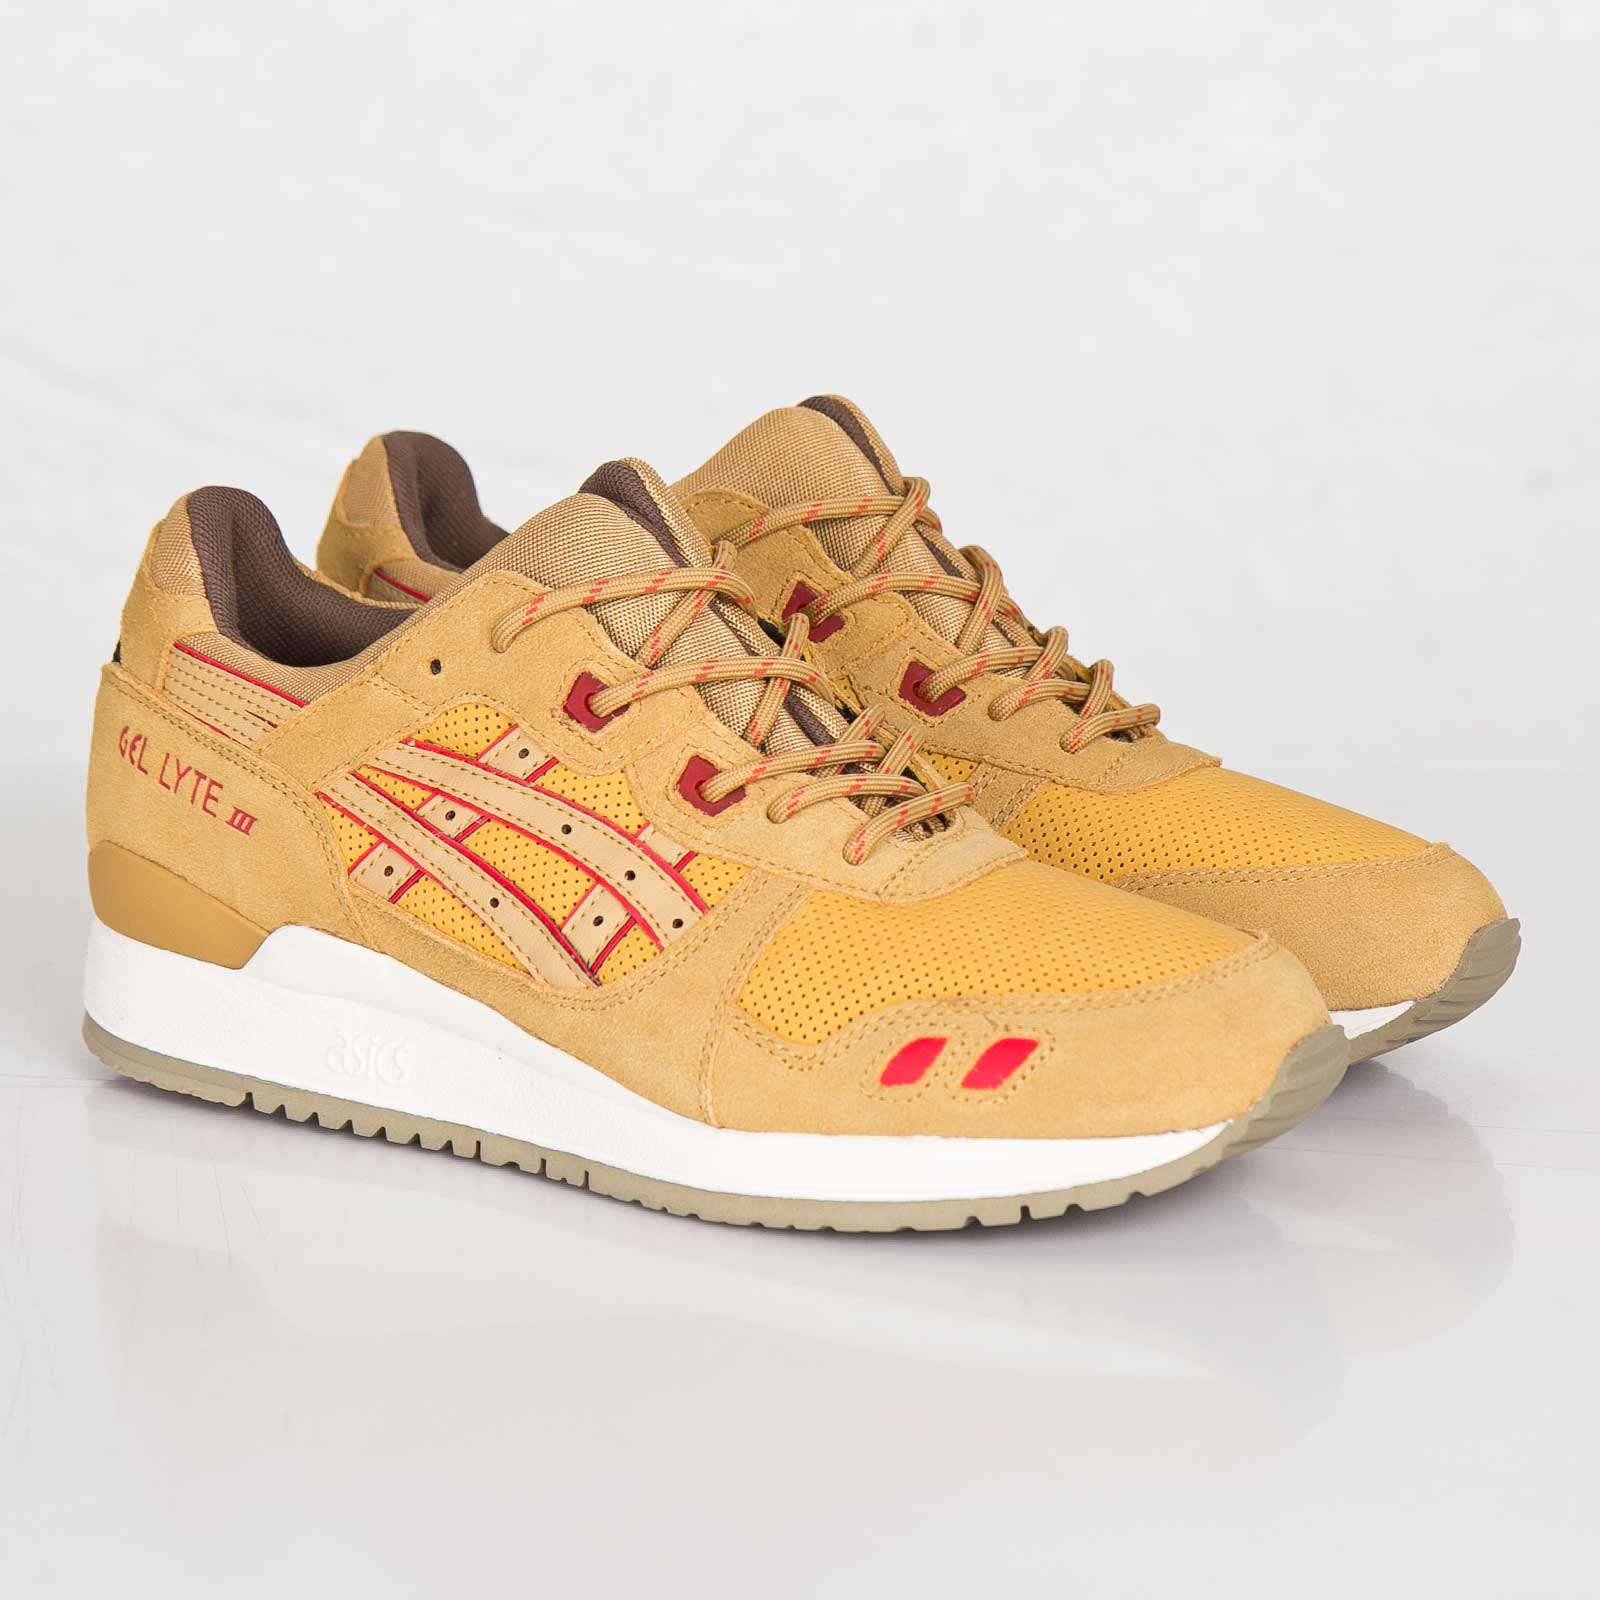 the best attitude ec739 12dc2 ASICS Tiger Gel-Lyte III - H427l-7171 - Sneakersnstuff ...